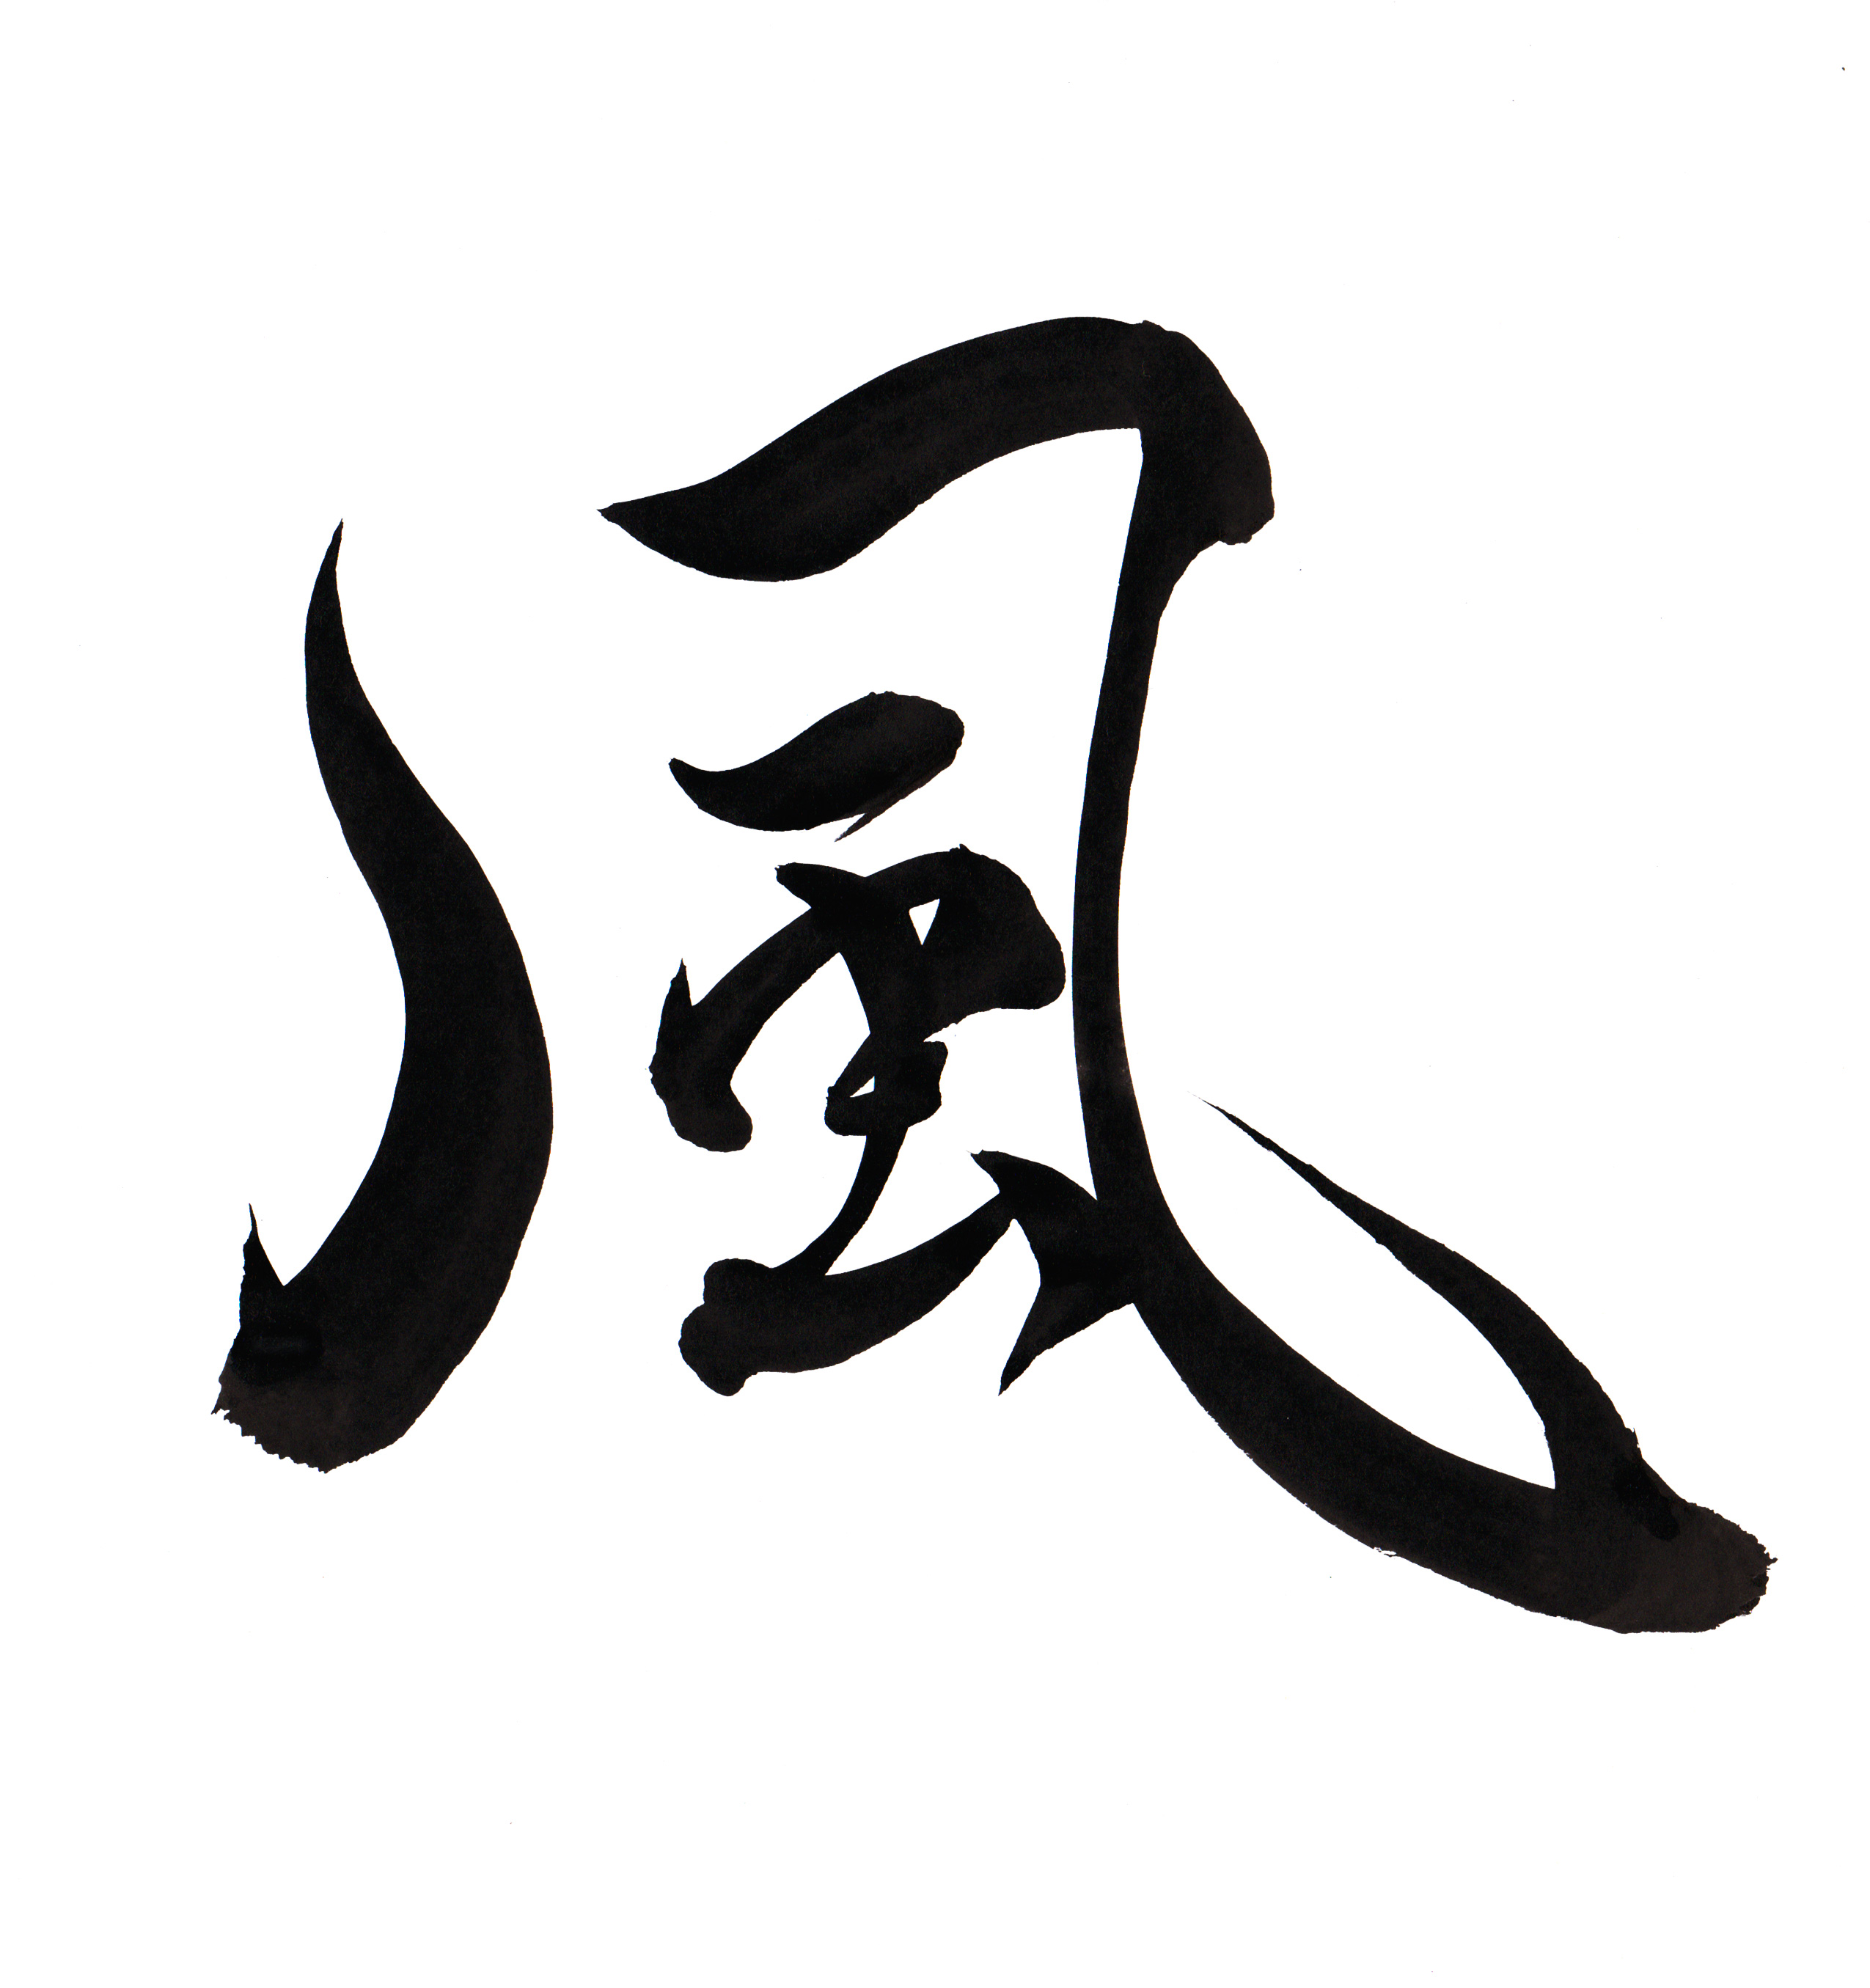 Wind free japanese calligraphy Japanese calligraphy online